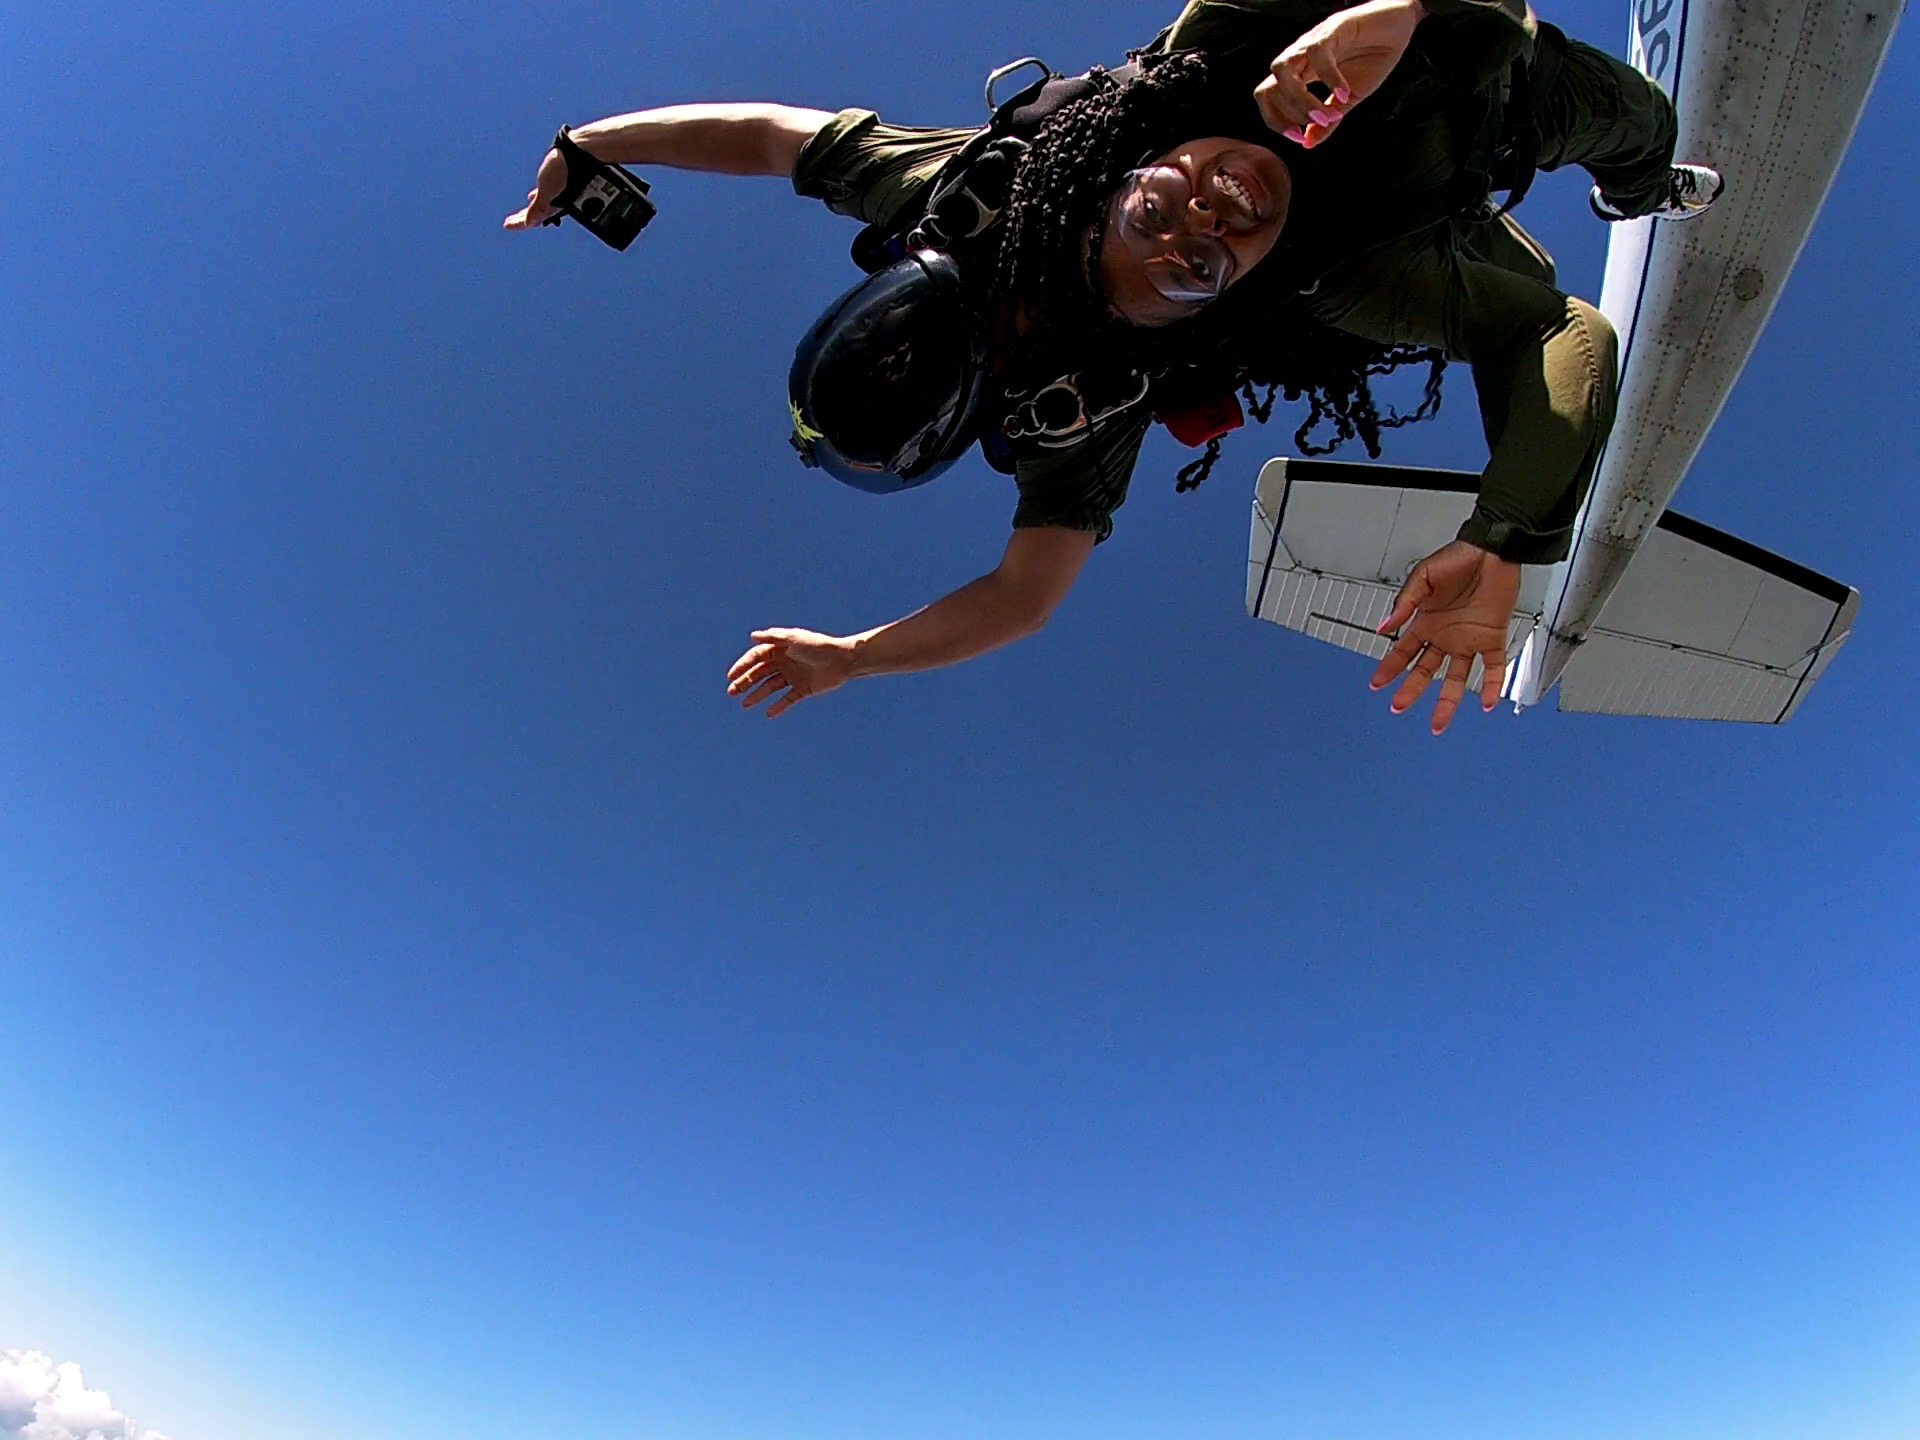 Virginia Skydiving